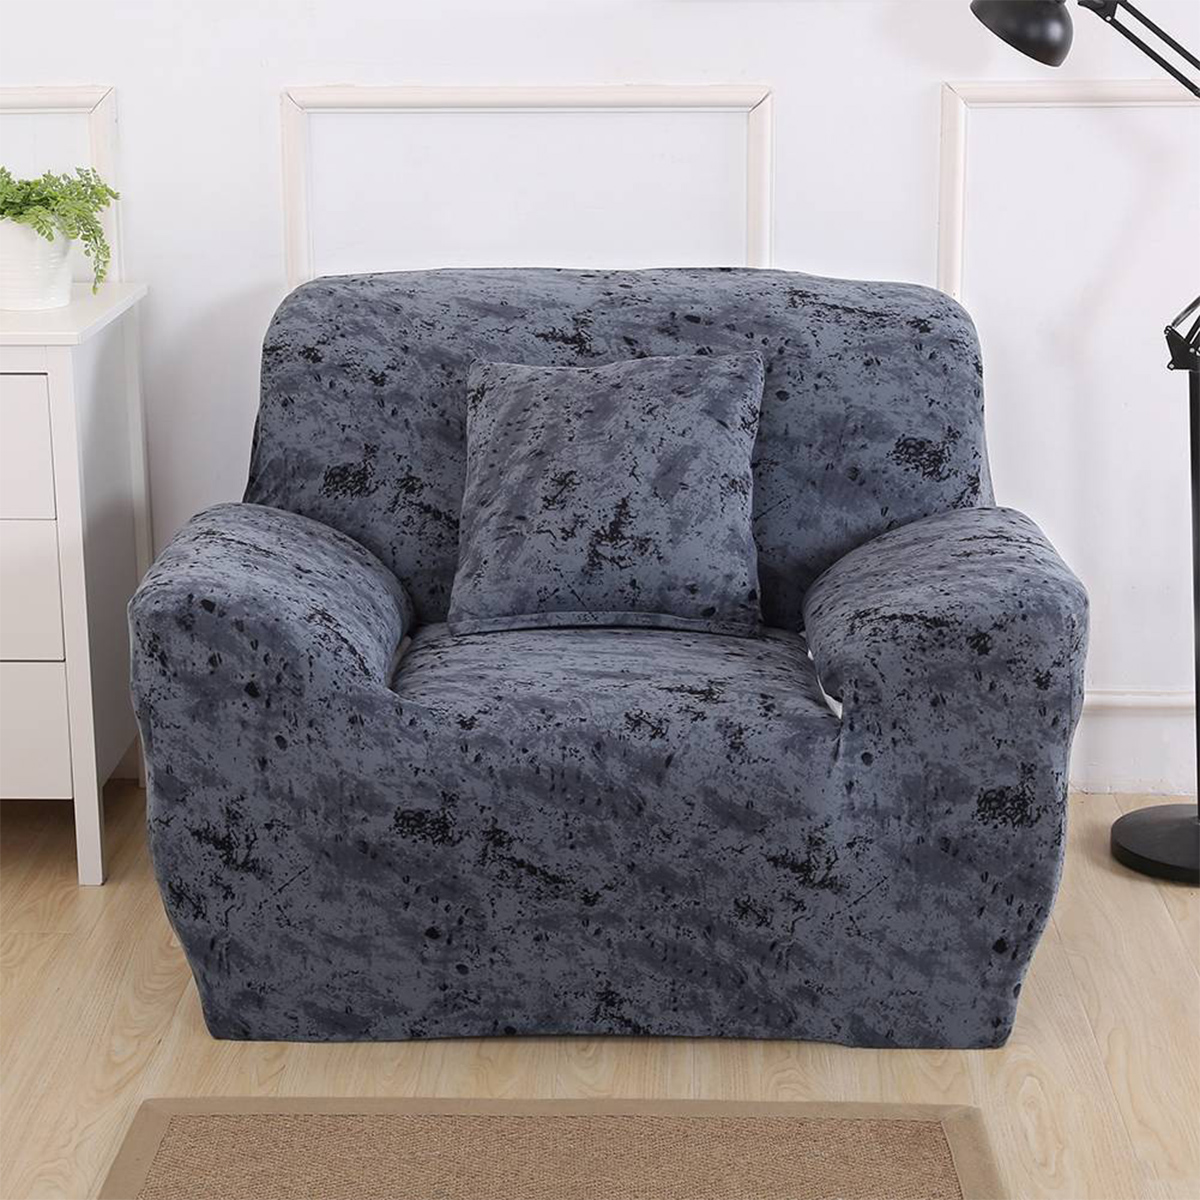 EASY Stretch Couch Sofa Lounge Covers Recliner 3 Seater Dining Chair Covers